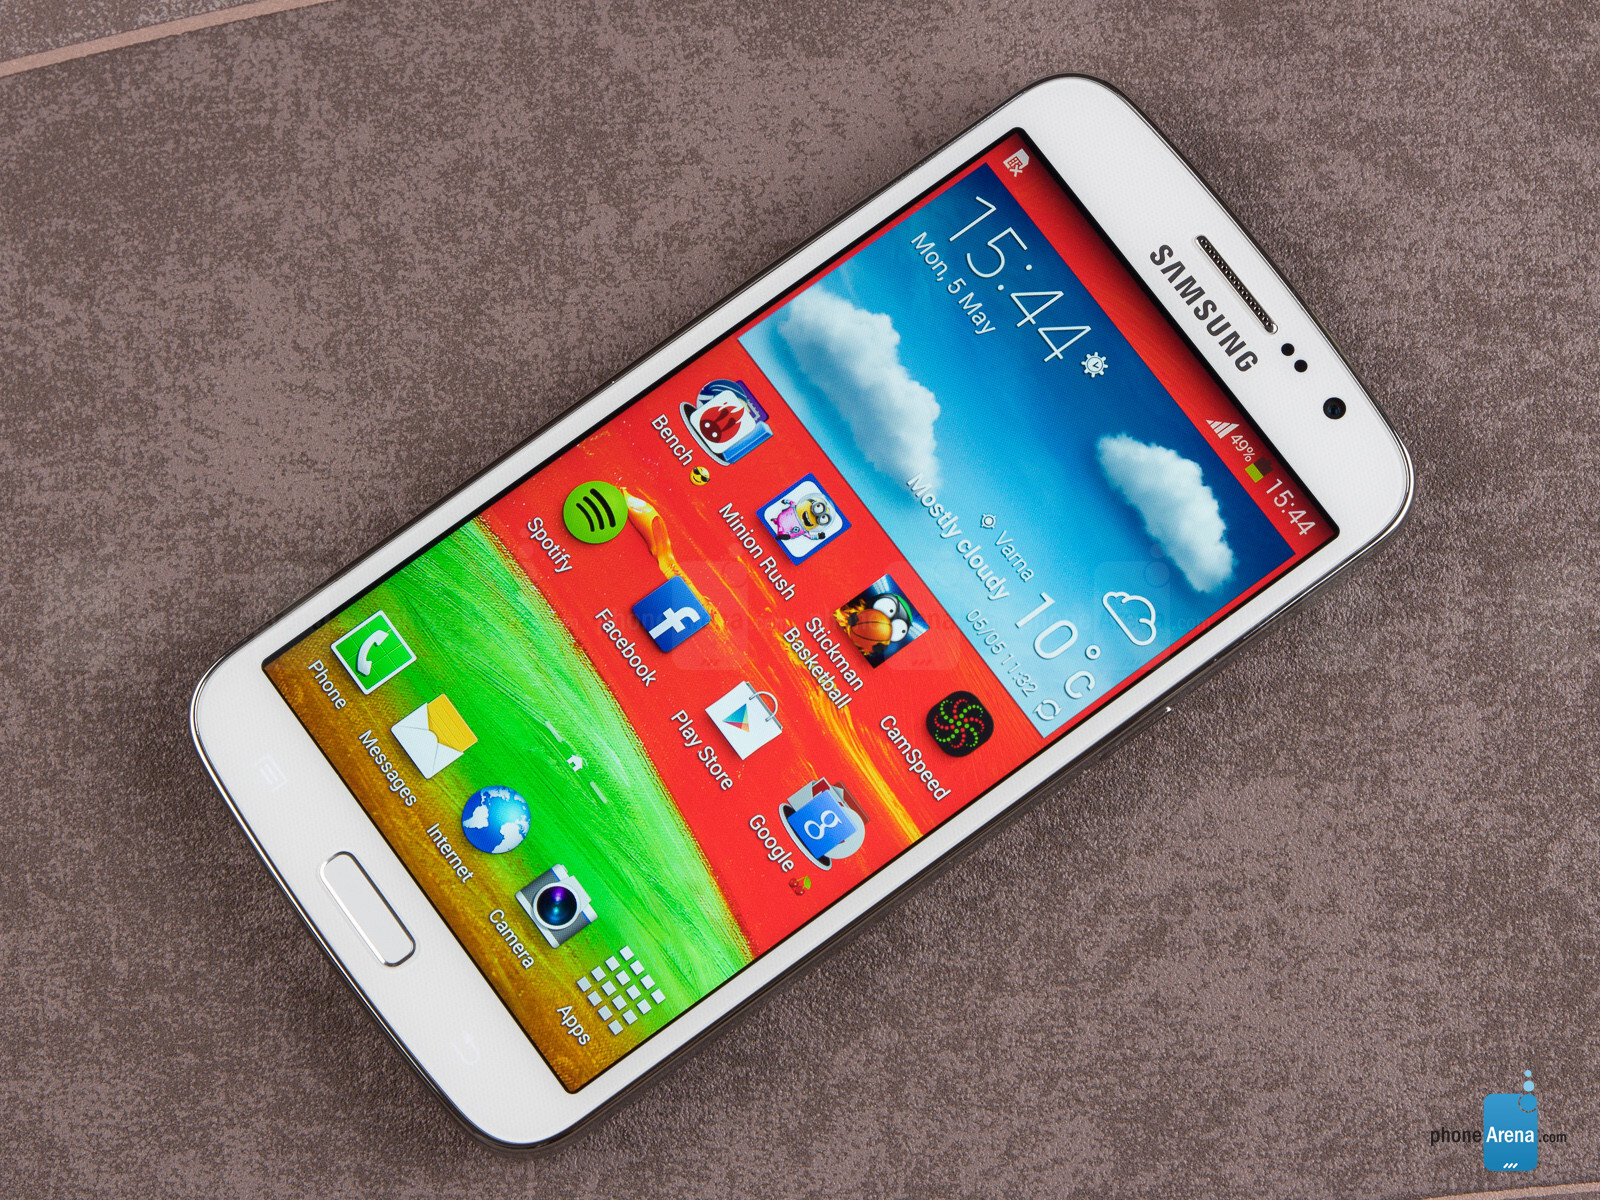 Love Wallpaper For Galaxy Grand 2 : Samsung Galaxy Grand 2 Review